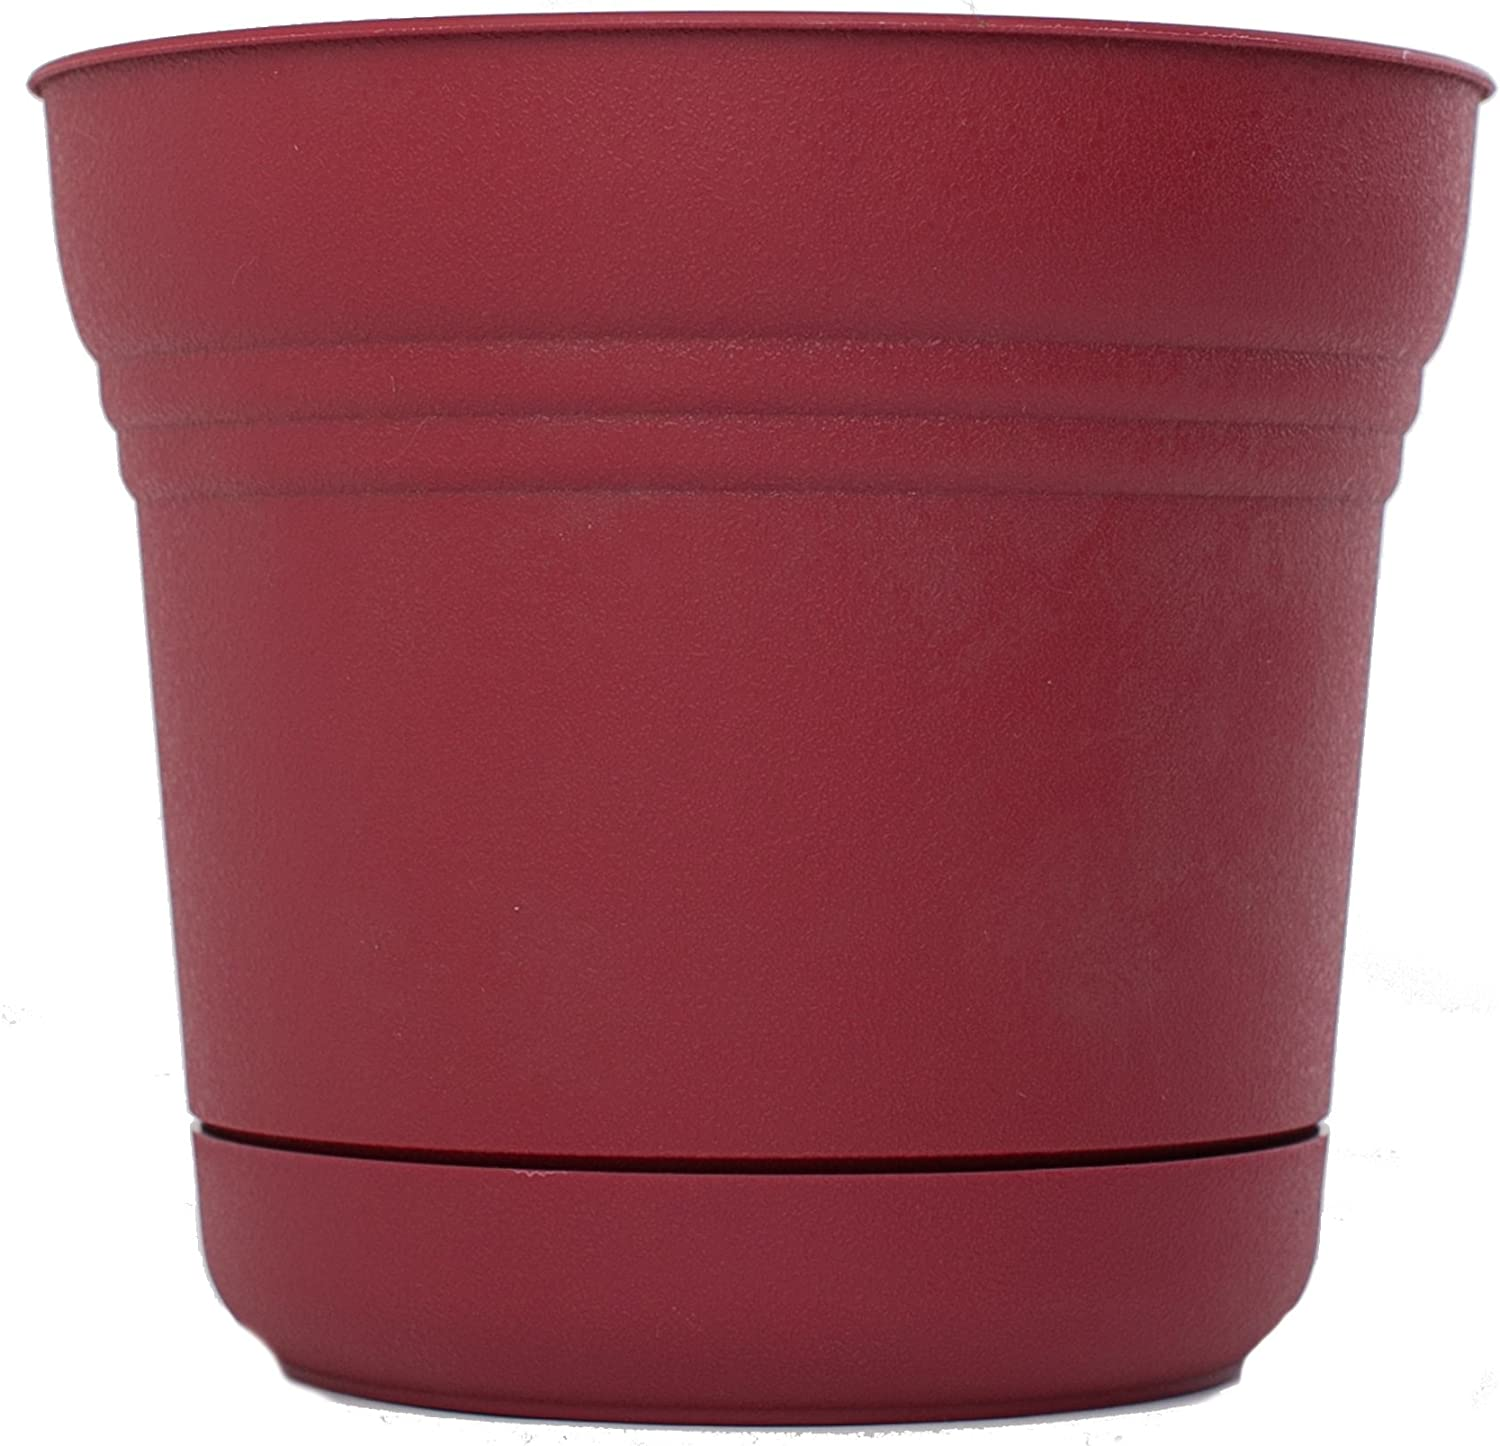 Bloem 818573014757 SP0712 Saturn Planter, 7-Inch, Union Red